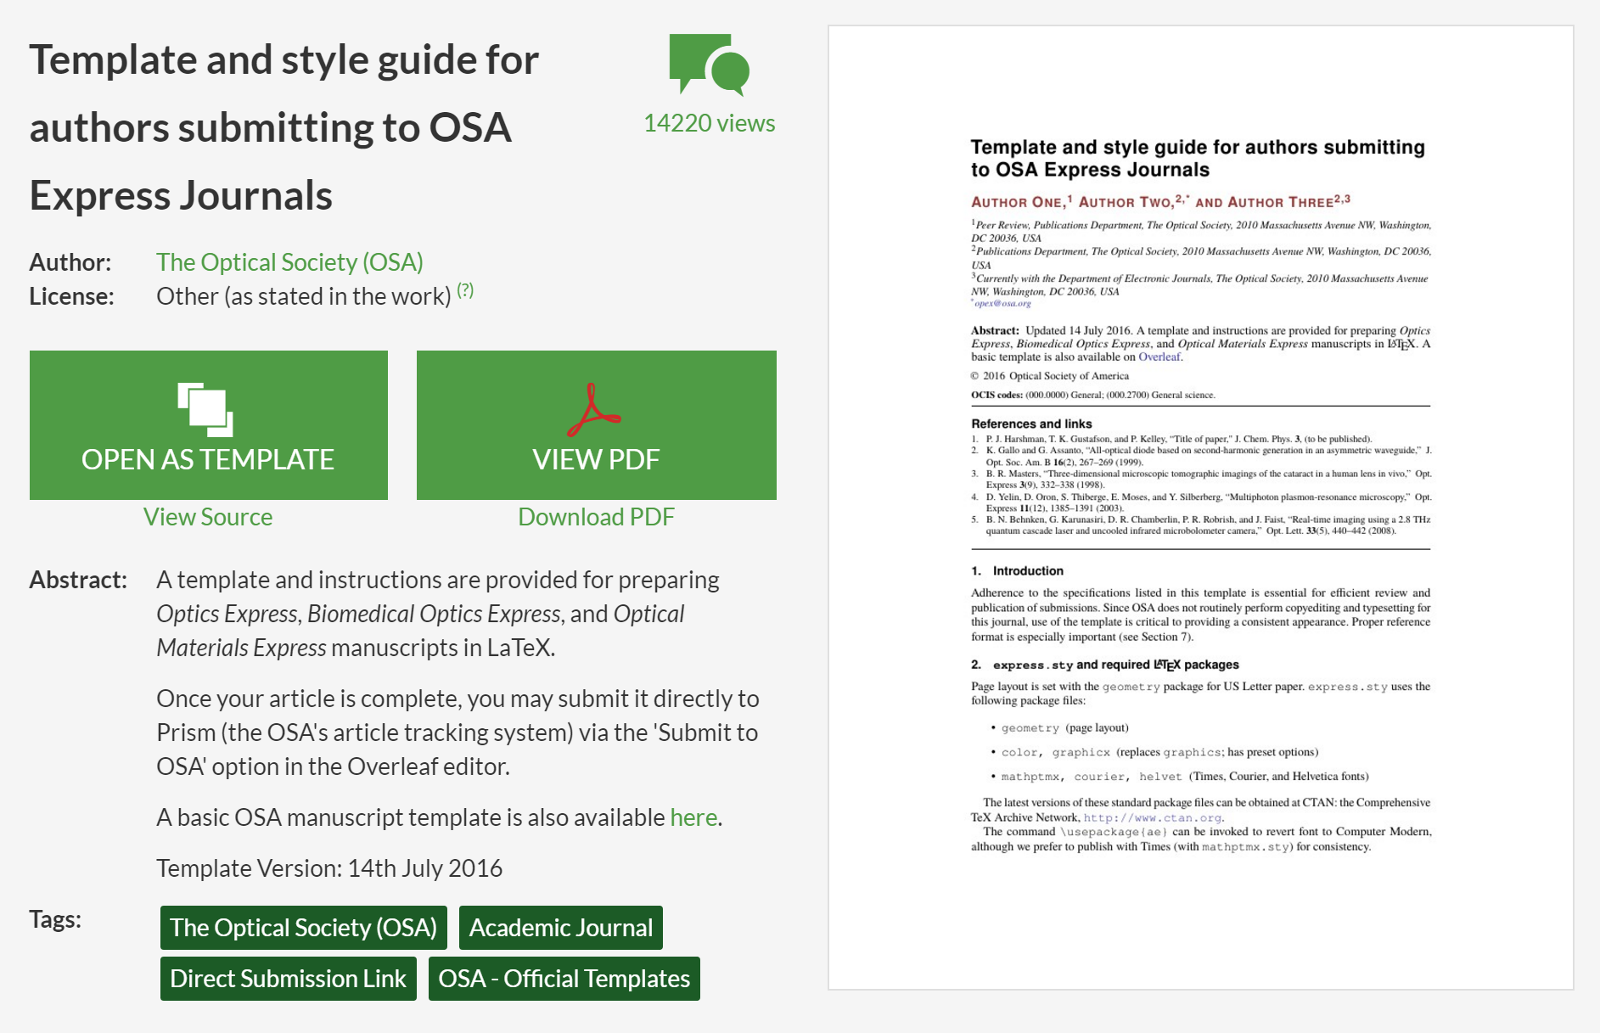 The new OSA Express template and style guide on Overleaf